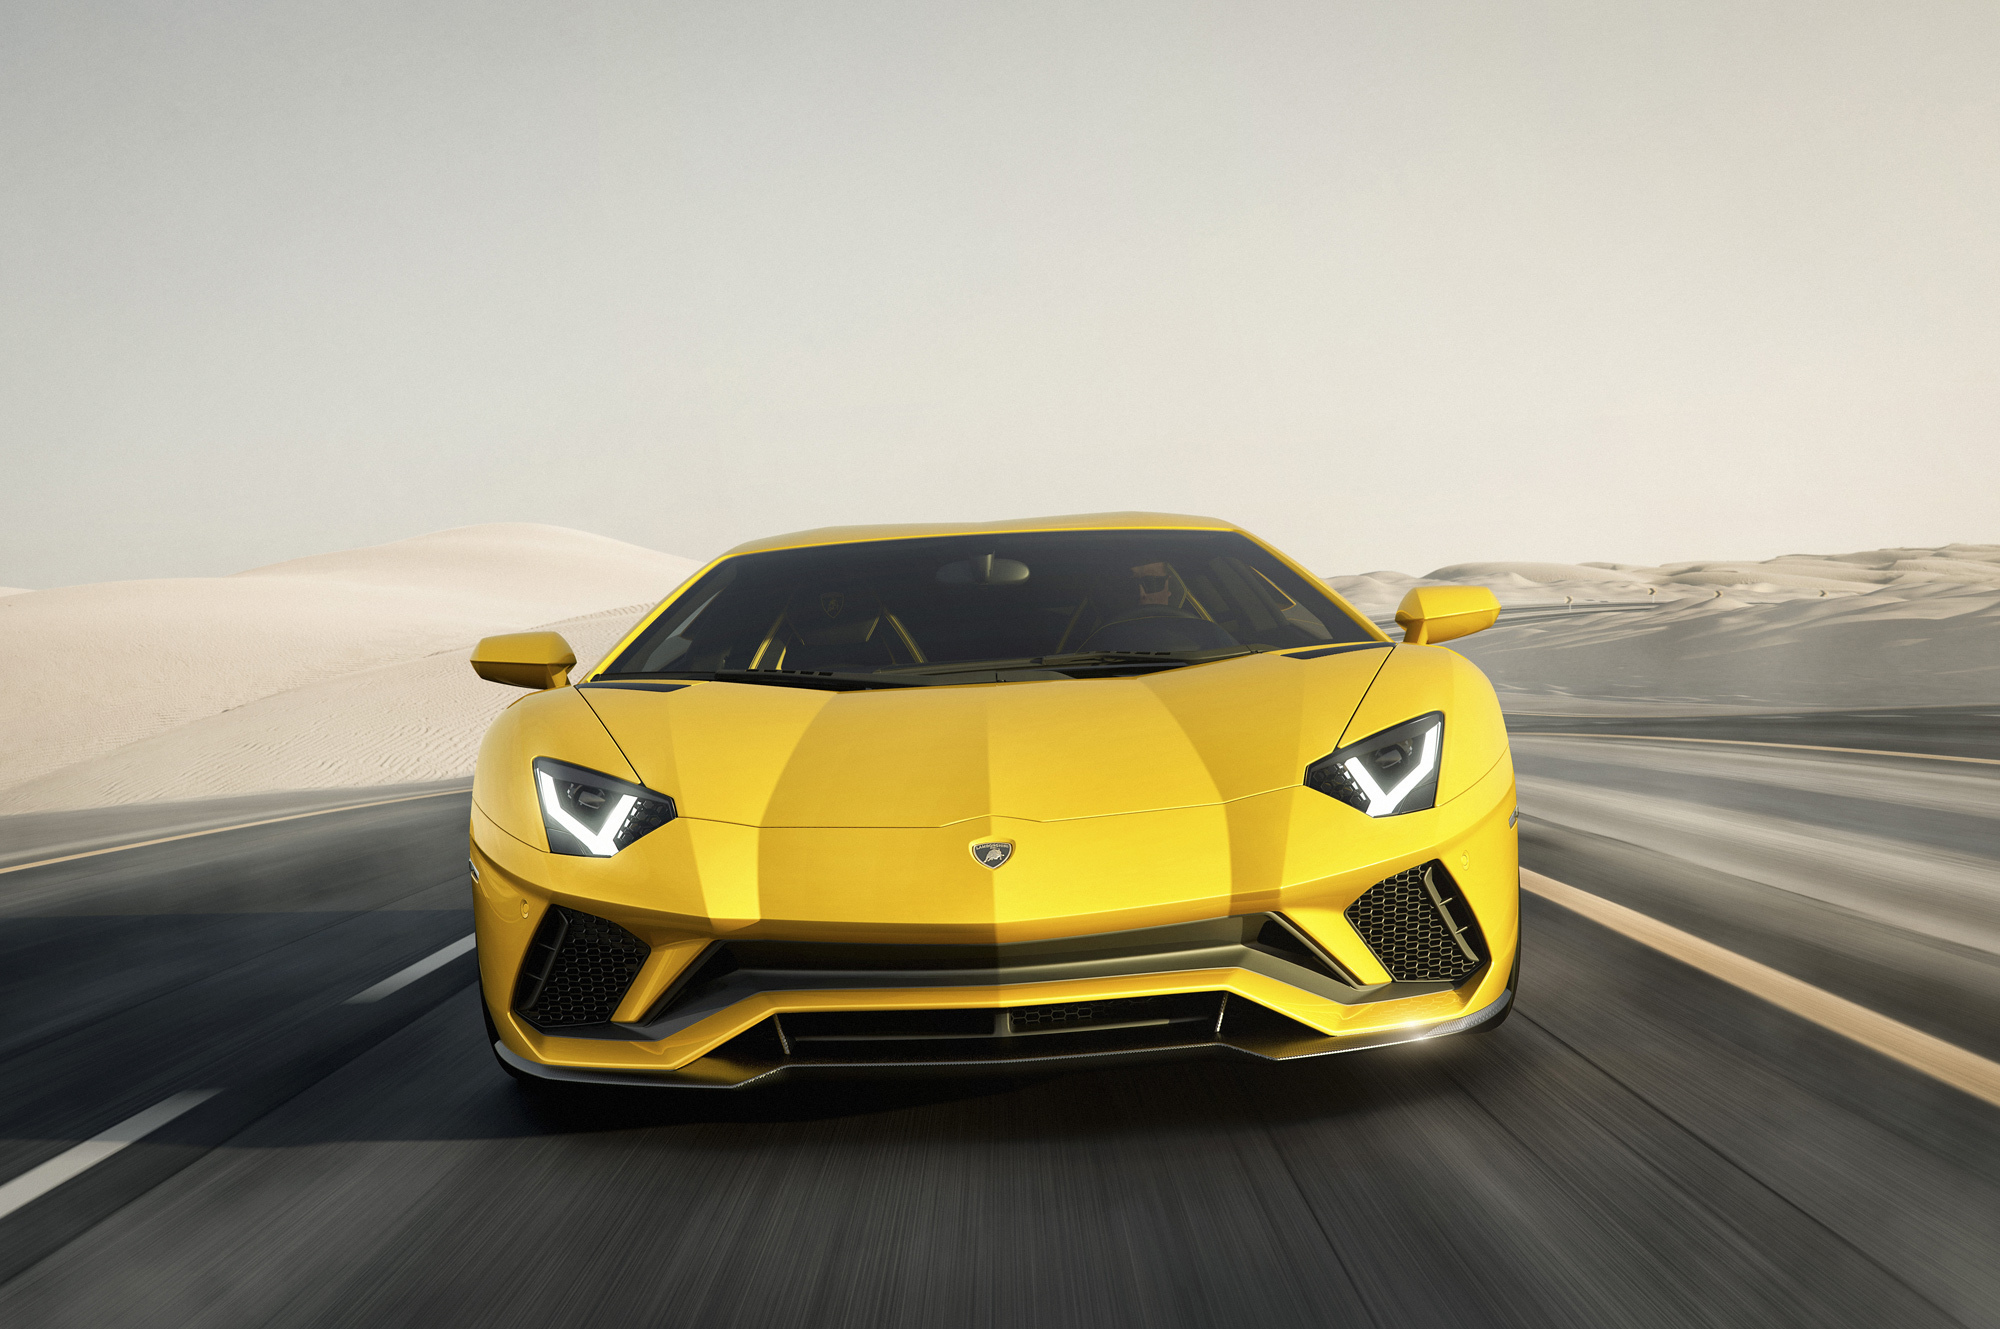 Lamborghini Aventador S Wallpapers Images Photos Pictures Backgrounds 2000x1329